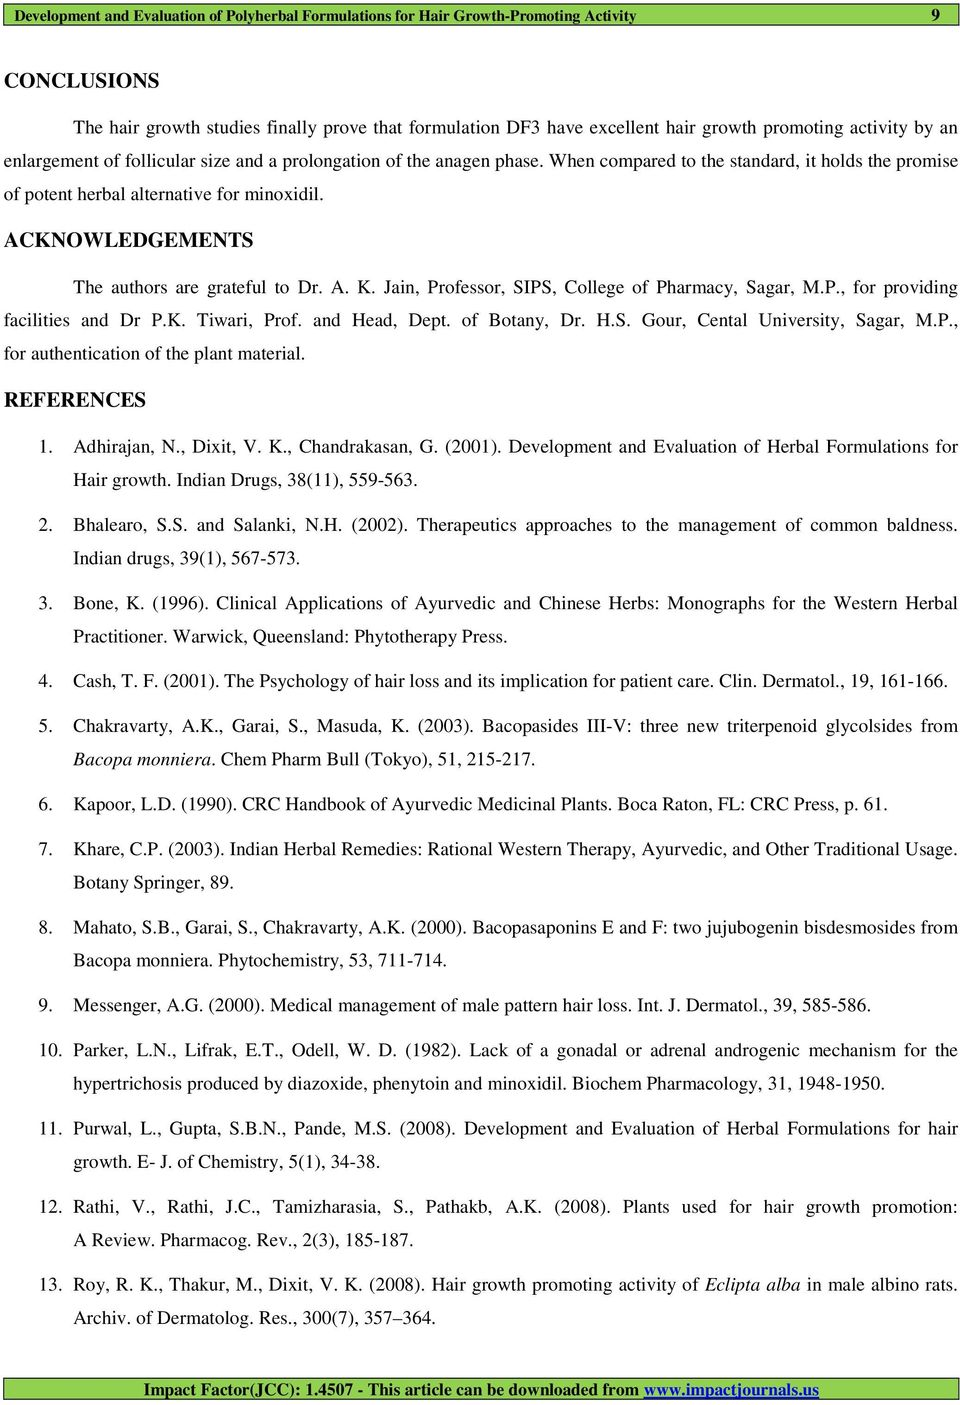 ACKNOWLEDGEMENTS The authors are grateful to Dr. A. K. Jain, Professor, SIPS, College of Pharmacy, Sagar, M.P., for providing facilities and Dr P.K. Tiwari, Prof. and Head, Dept. of Botany, Dr. H.S. Gour, Cental University, Sagar, M.